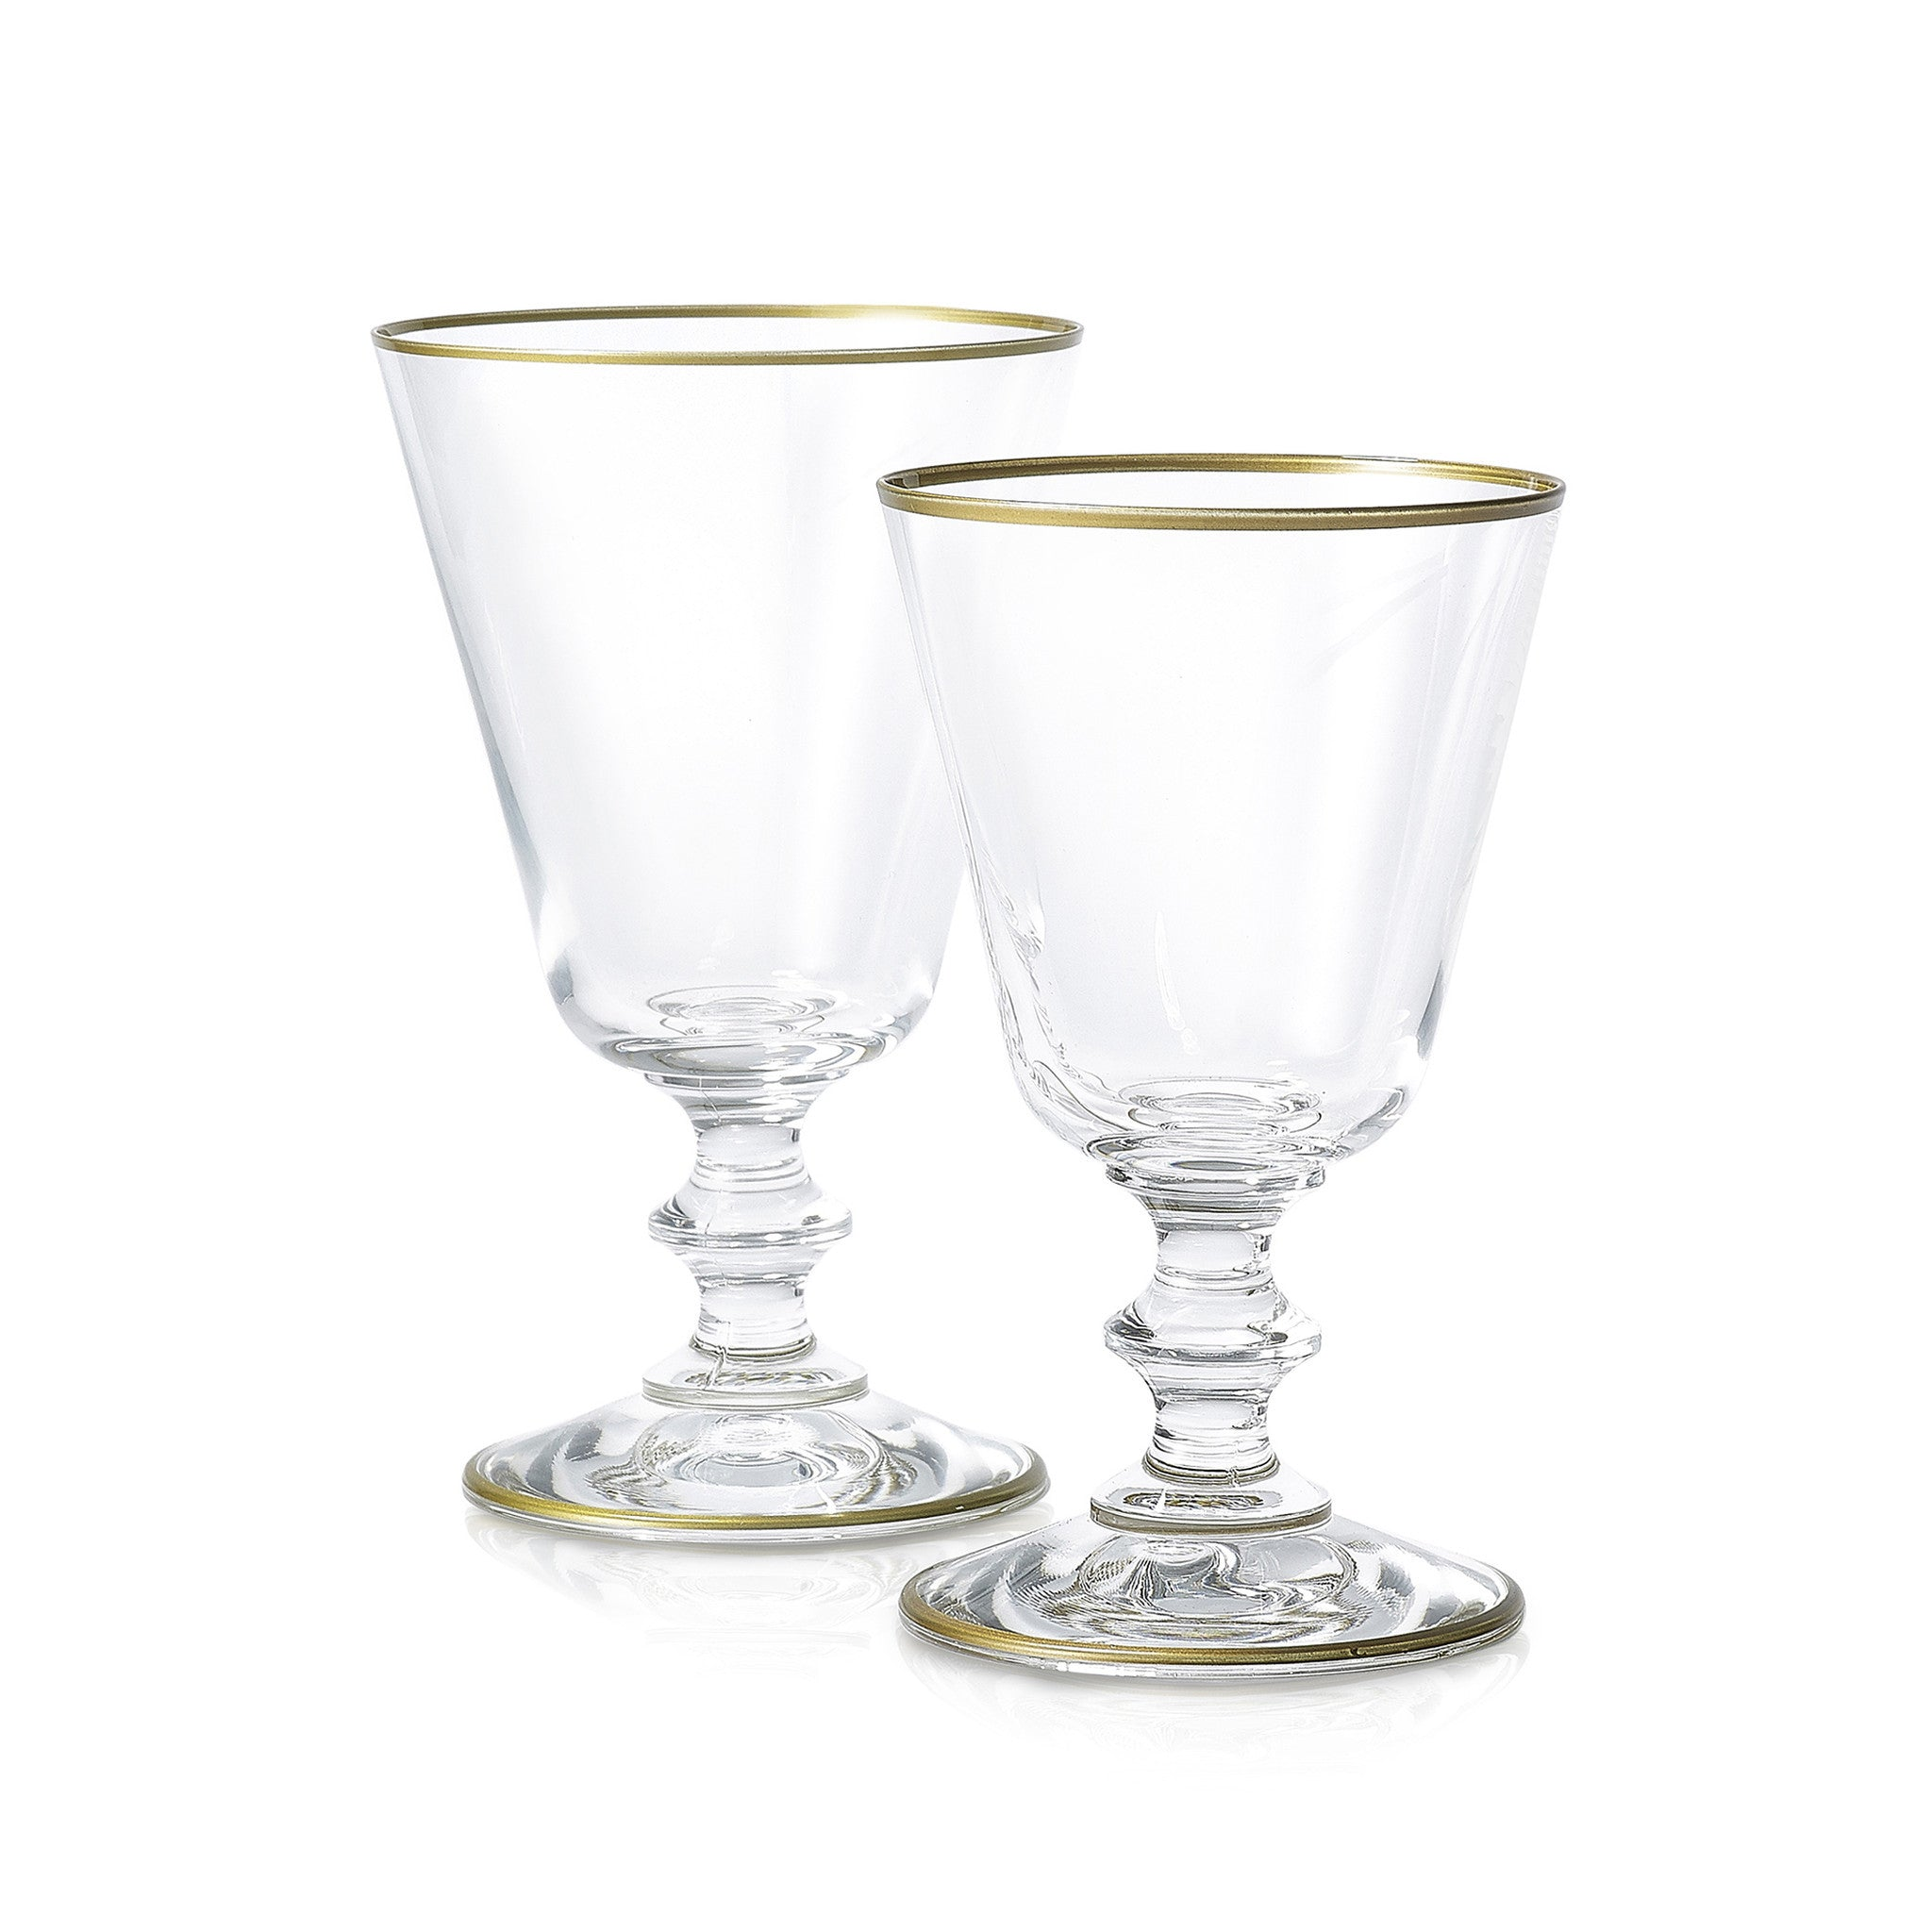 S&B Classic White Wine Glass With Gold Rim, 19cl